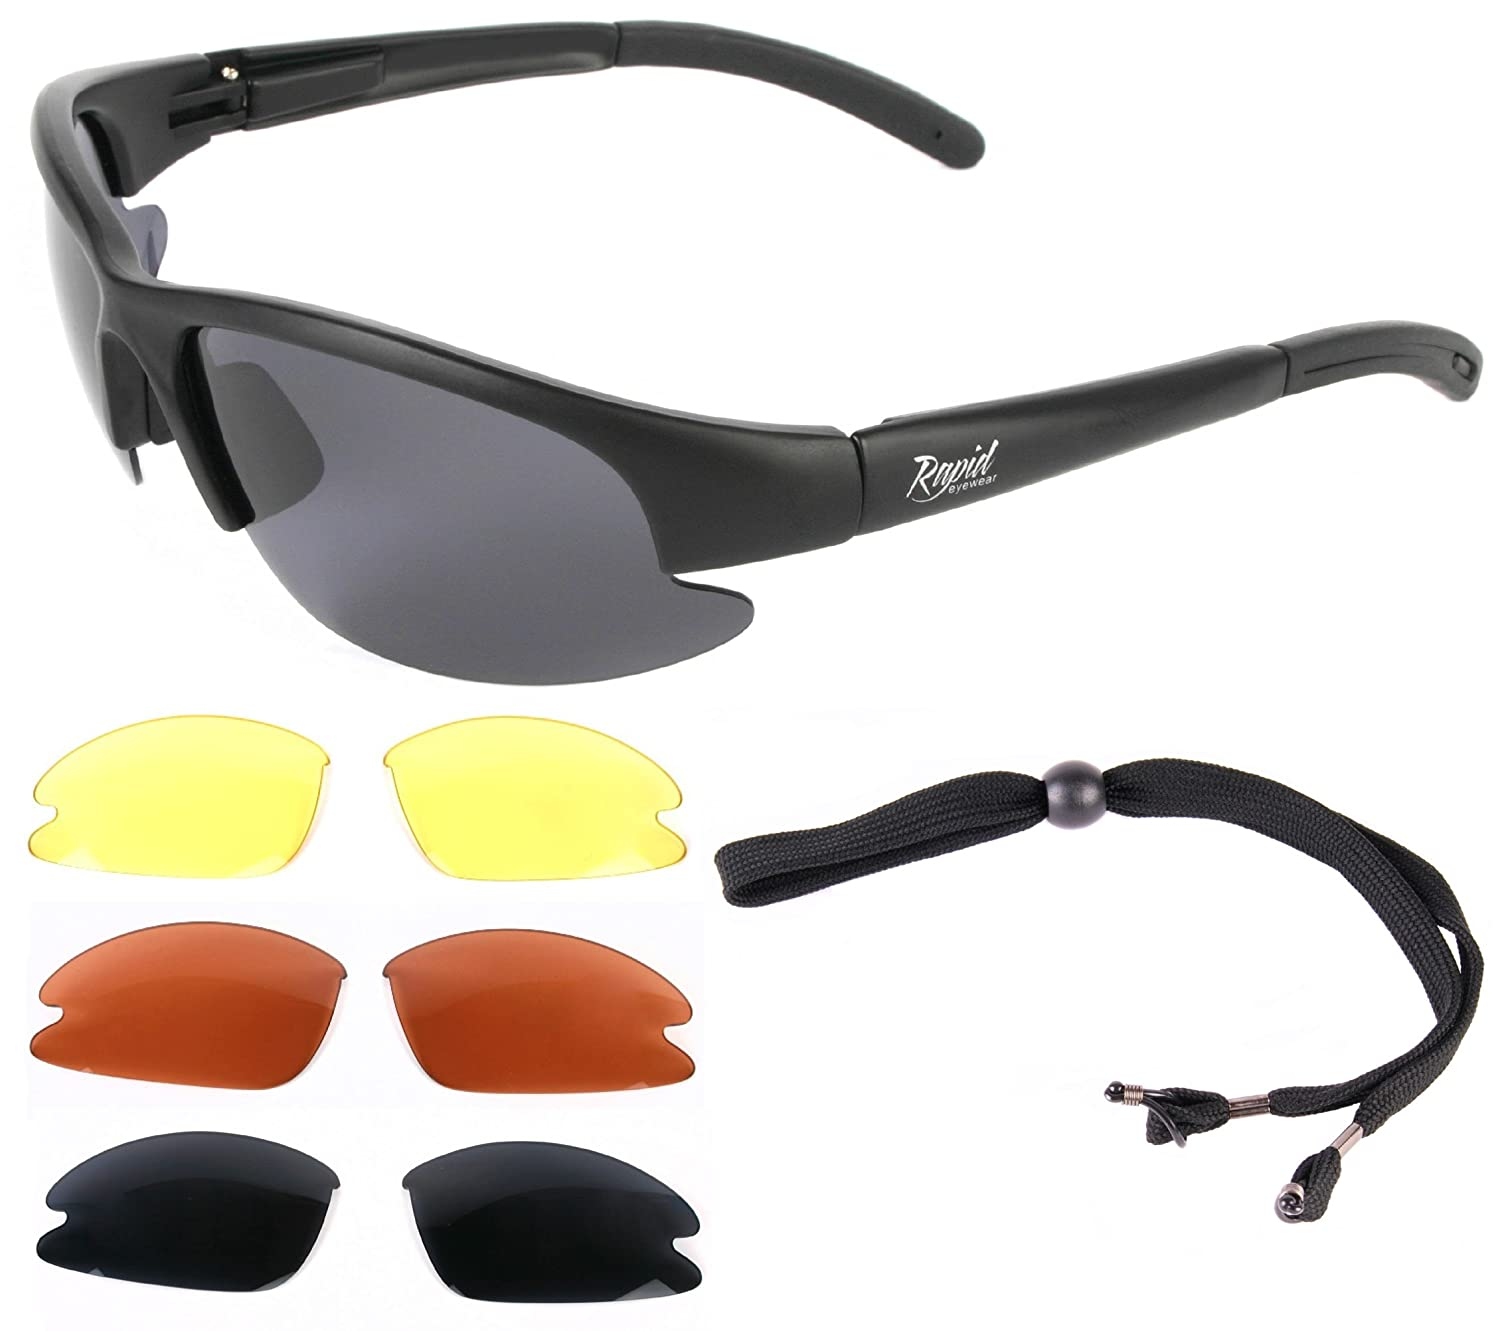 'Mile High' Cruise (Black) PILOT SPEC SUNGLASSES for Flying, Running, Cycling, Sailing & Other Sports. Interchangeable lenses, inc. Low Light. UVA / UVB (UV400) Protection. For Men & Women Rapid Eyewear RAP24